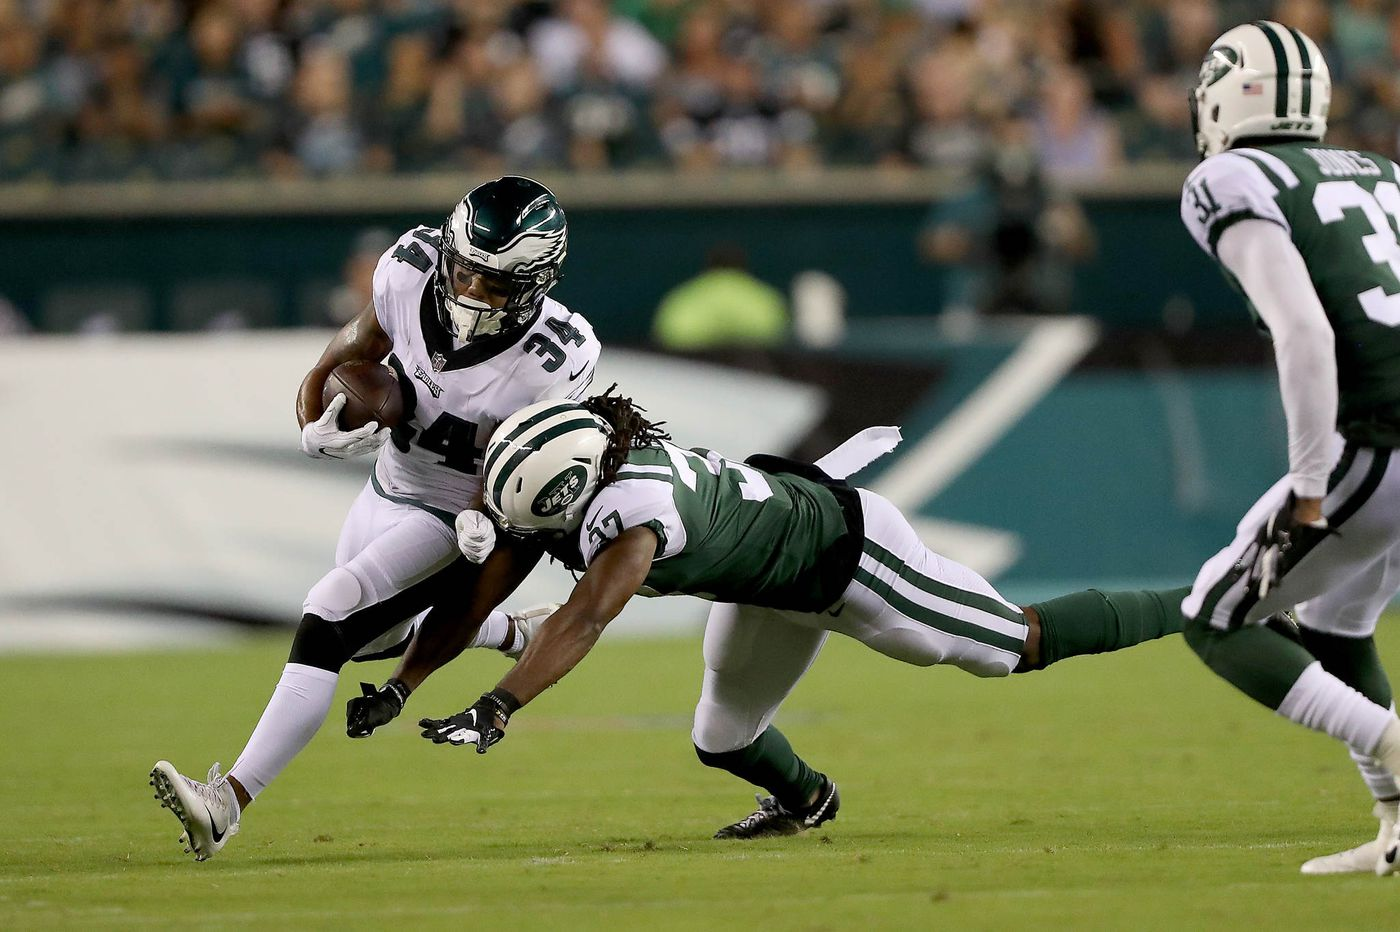 Eagles set 53-man roster, release Steven Means, waive Donnel Pumphrey, and keep Josh Perkins on cut-down day